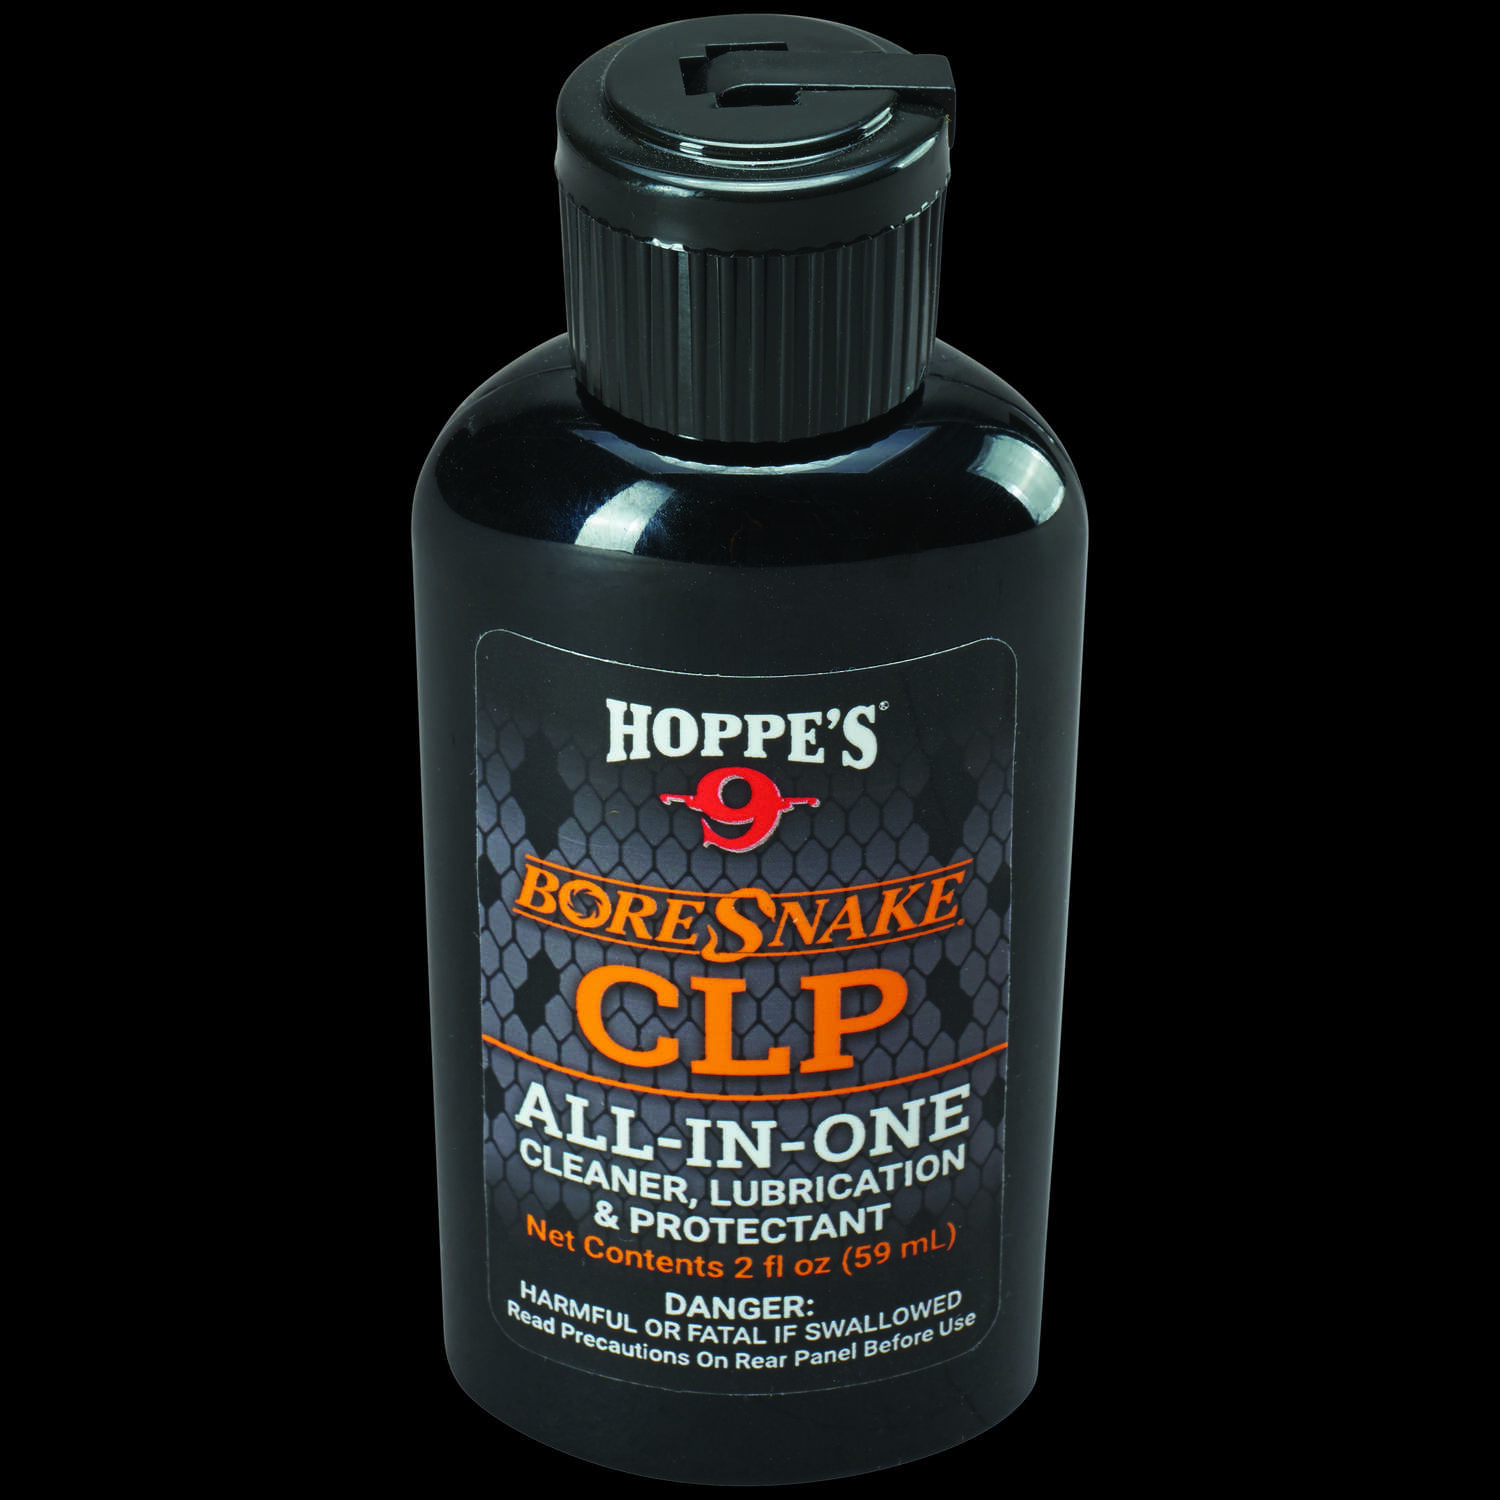 Hoppe's No. 9  BoreSnake  Gun Cleaner/Lubricant/Protectant  2 oz. 1 pc.